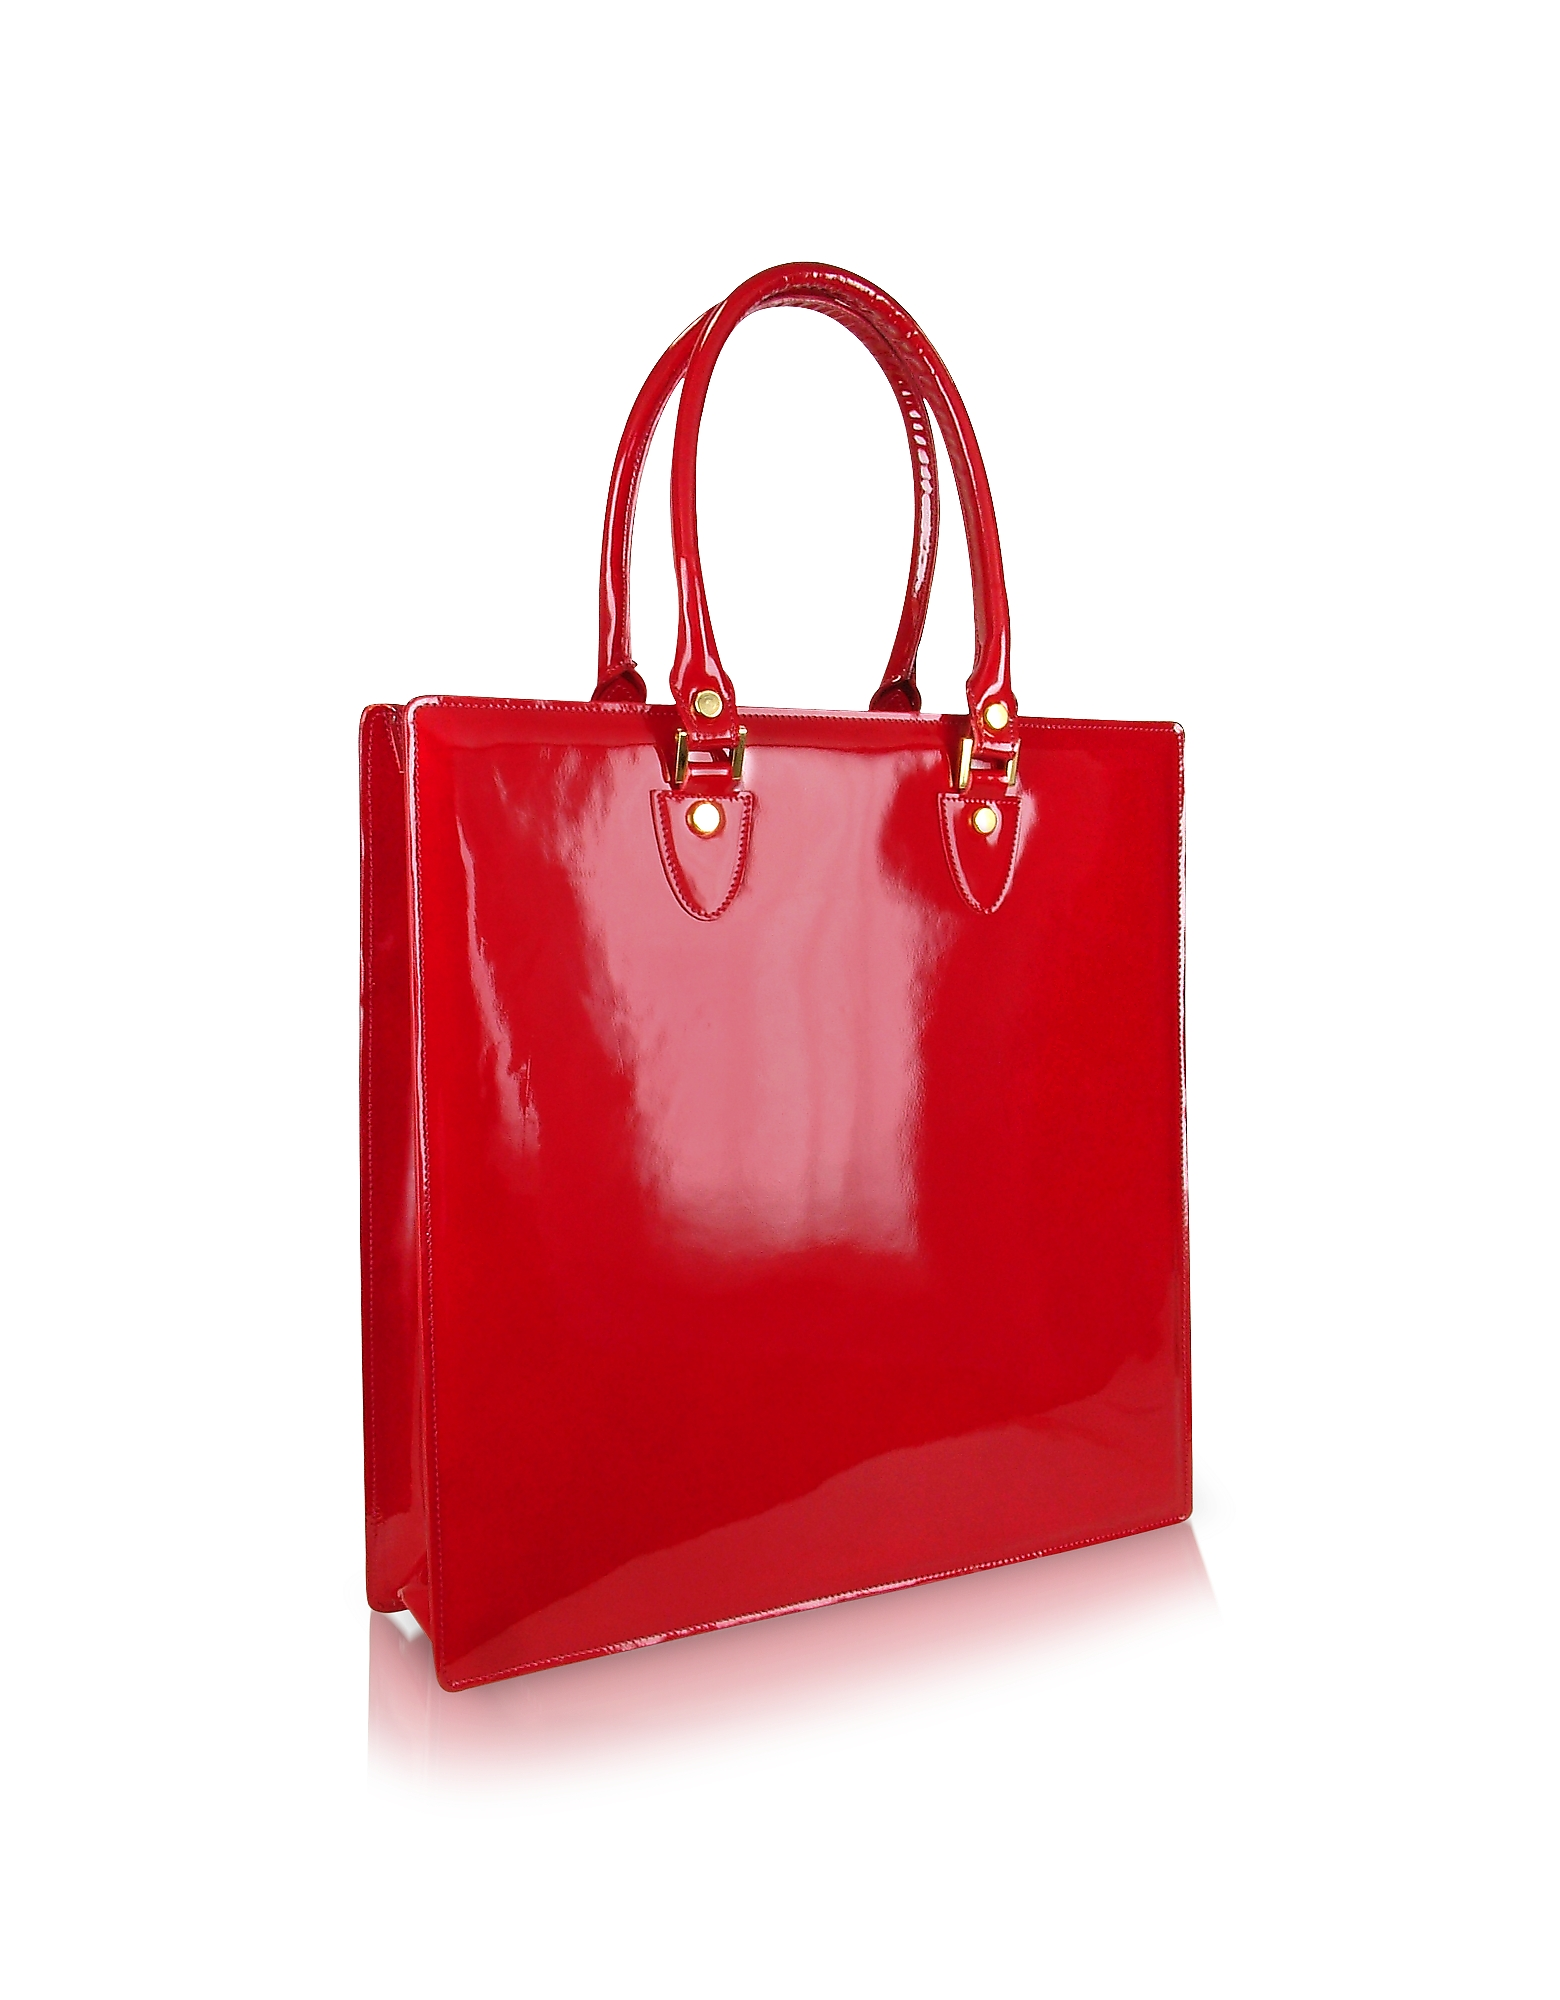 L.A.P.A. Handbags, Ruby Red Patent Leather Tote Bag